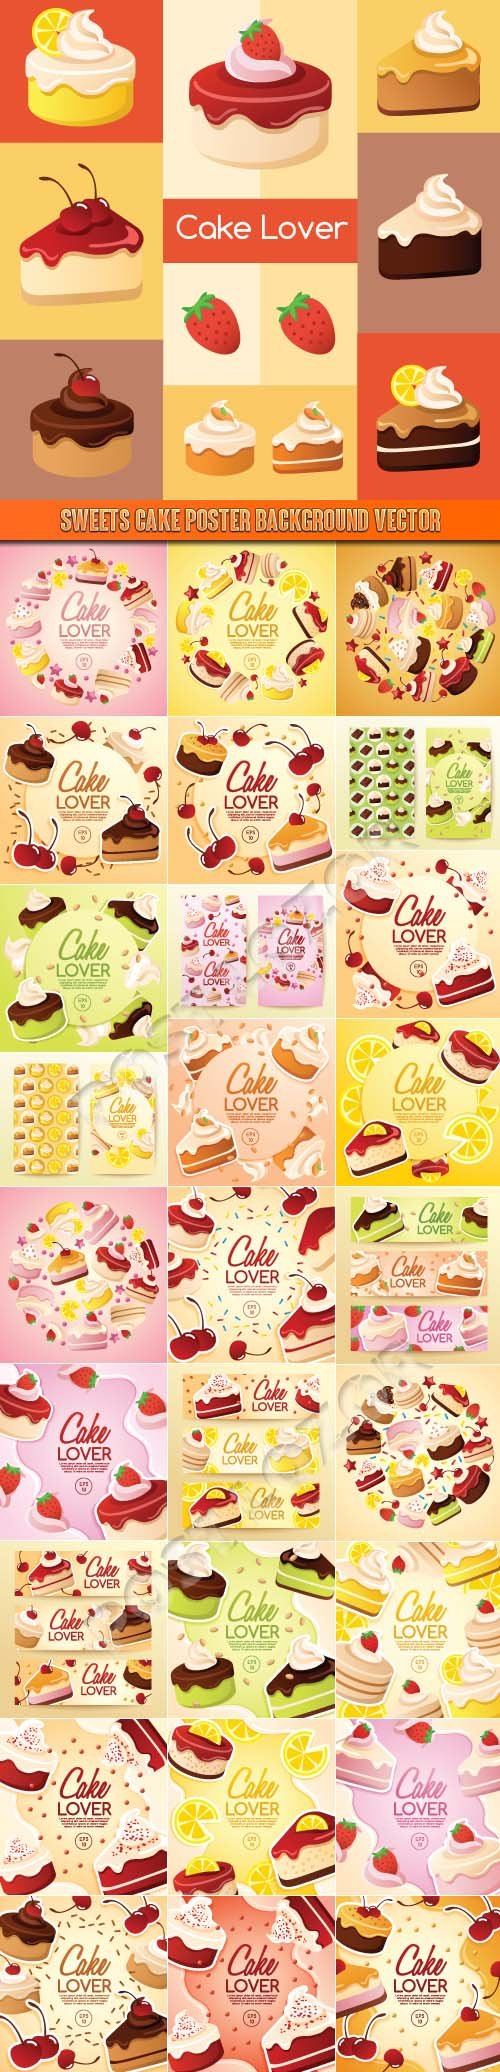 Sweets cake poster background vector